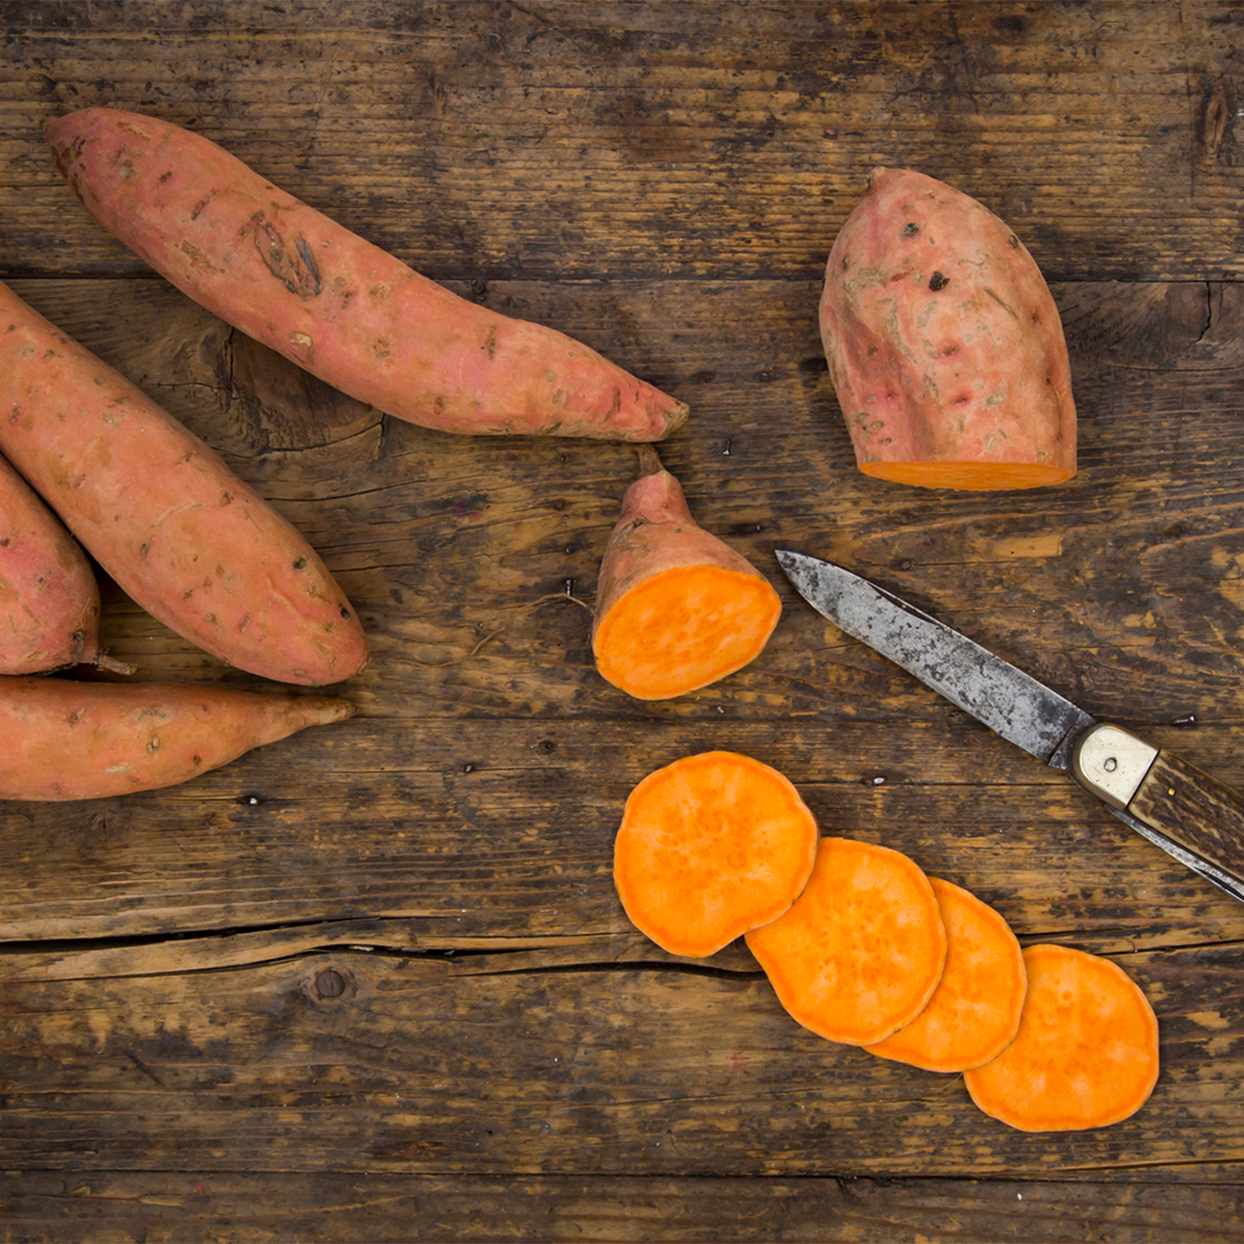 Are Sweet Potatoes Healthy? Here's What You Need to Know